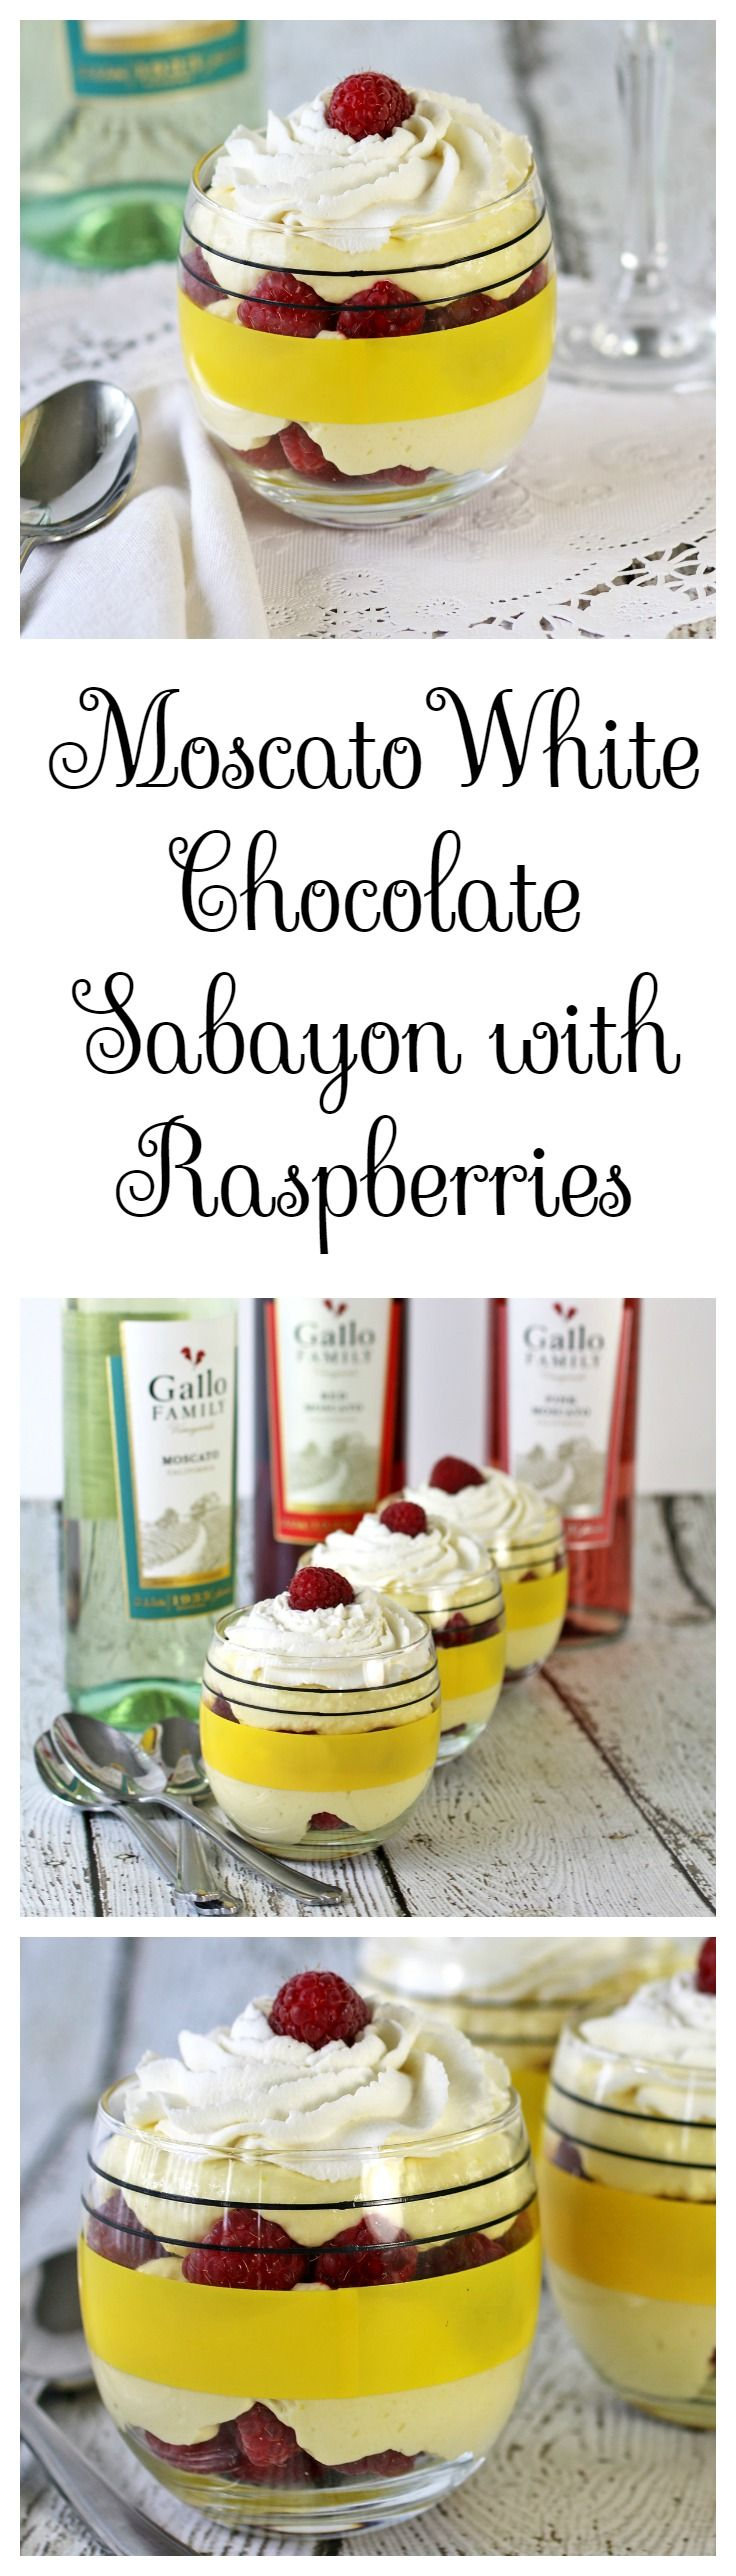 Moscato White Chocolate Sabayon #SundaySupper  #GalloFamily - Recipes Food and Cooking